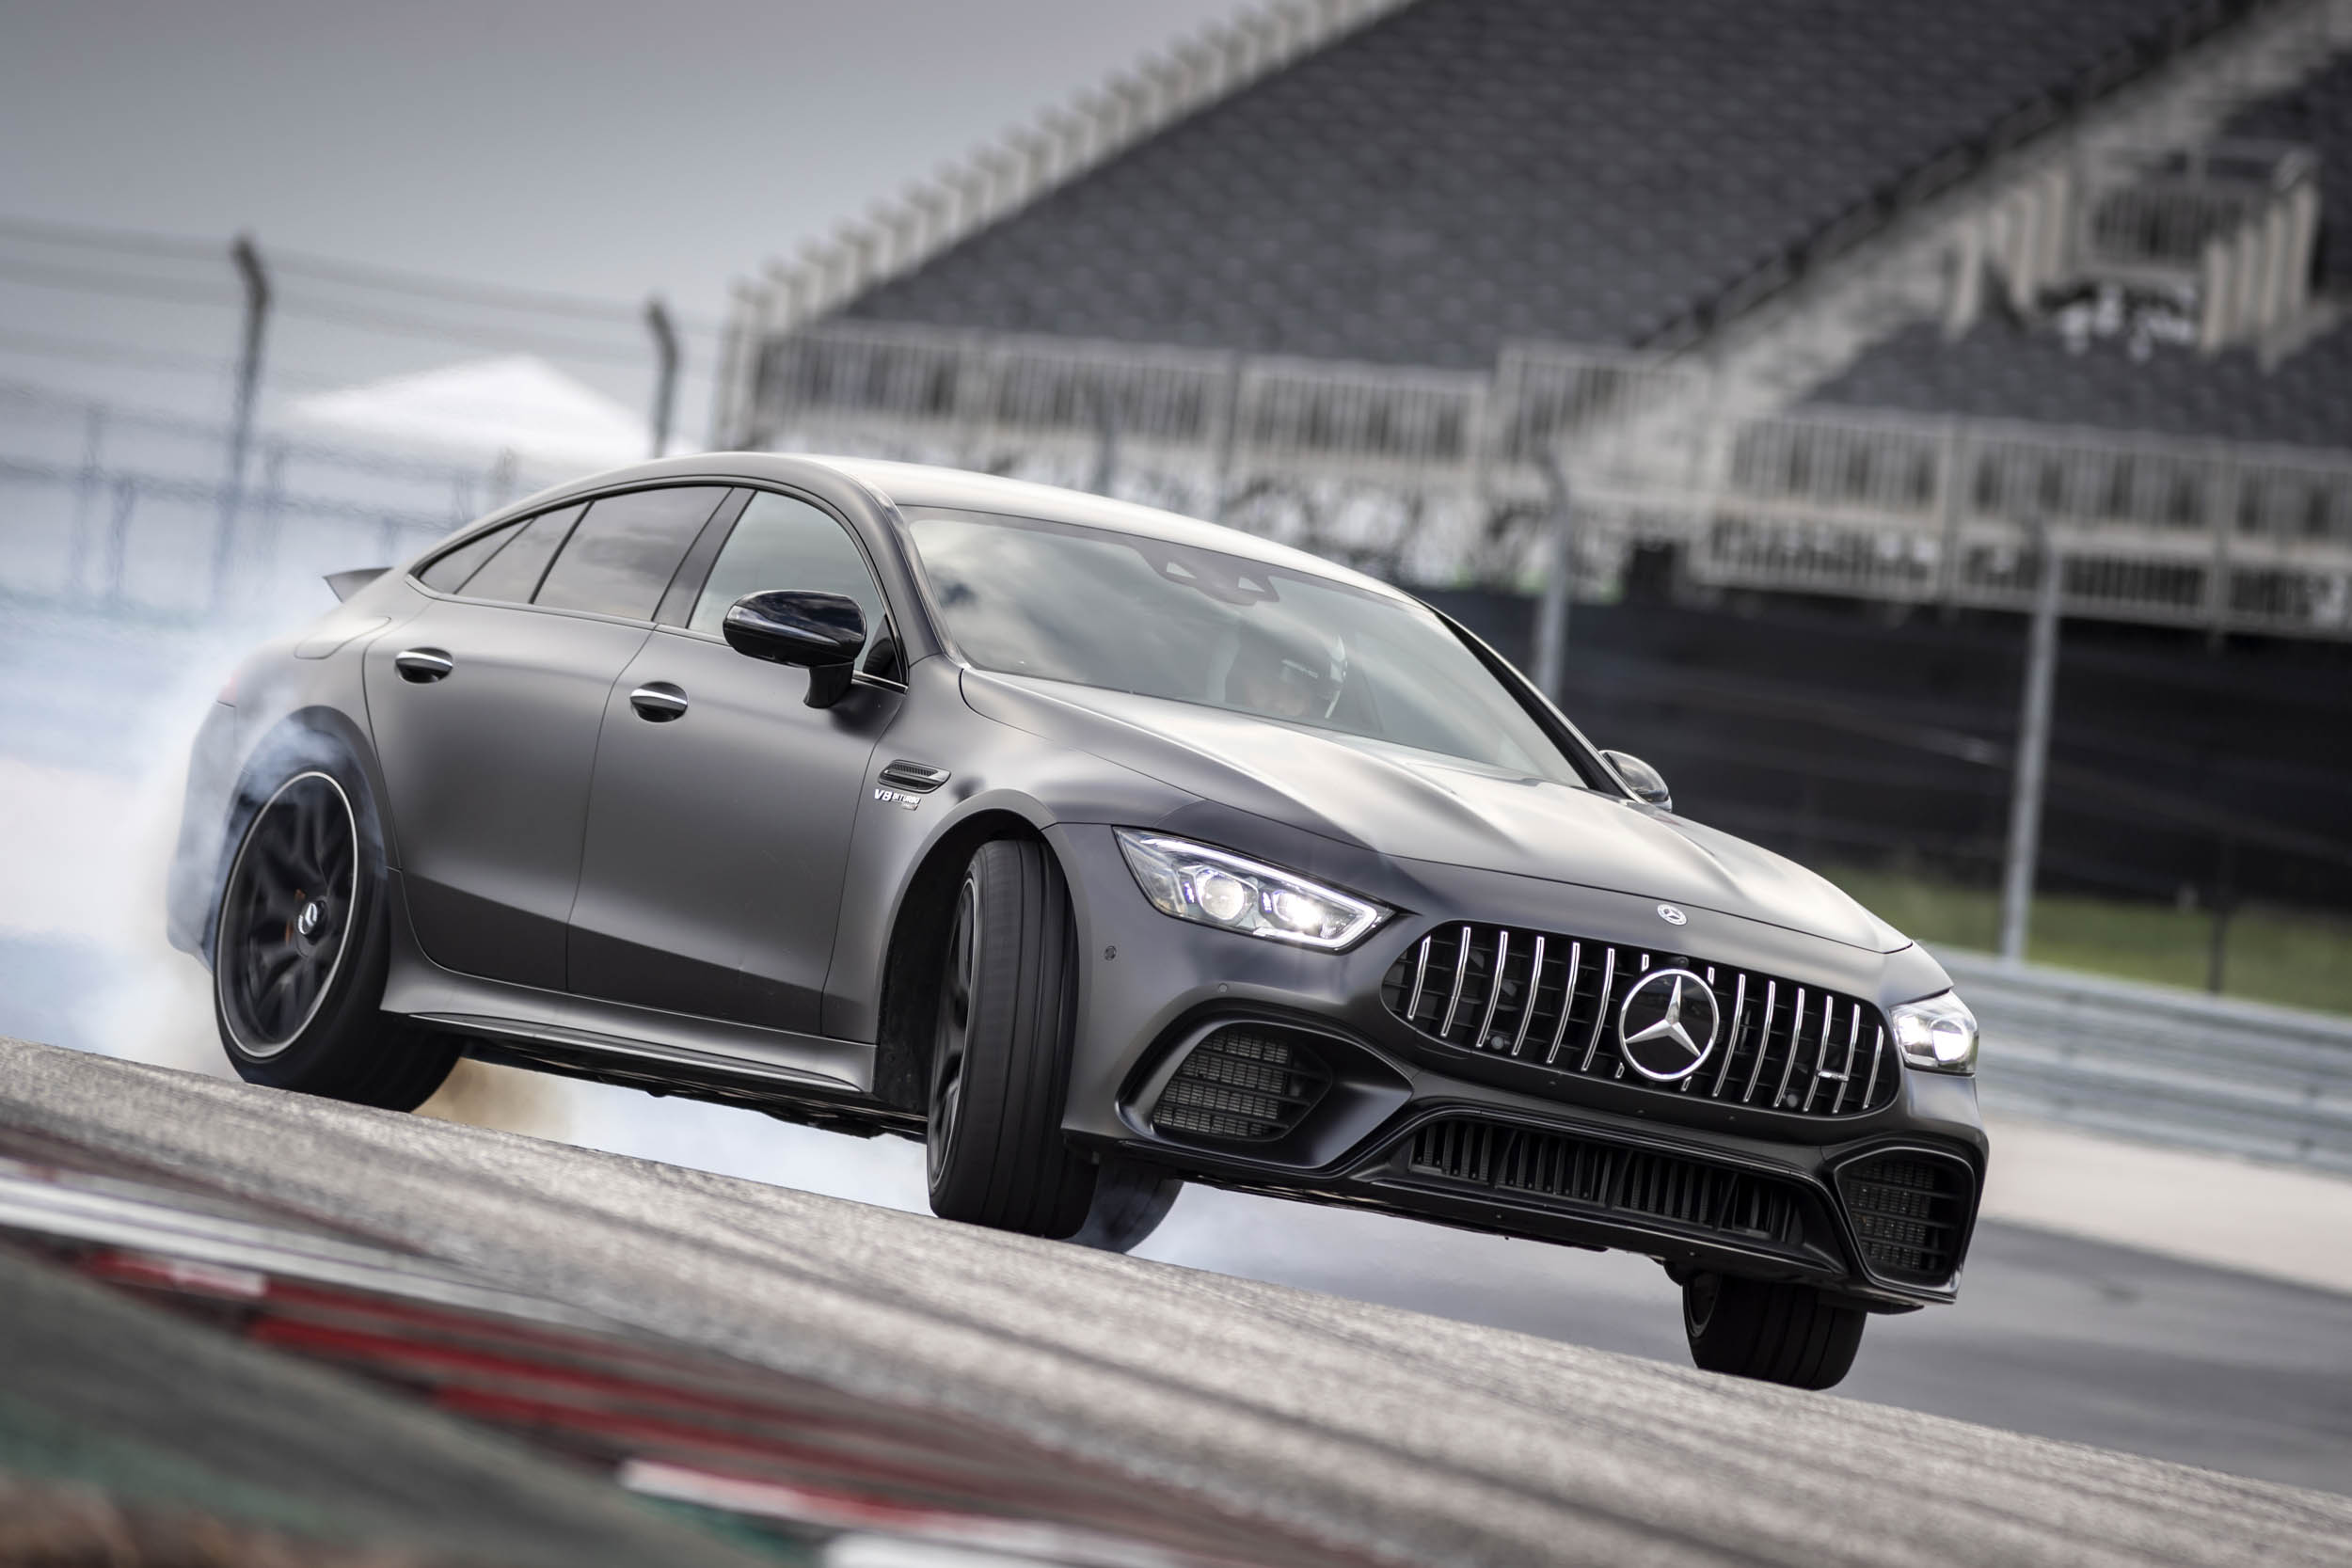 Mercedes-AMG GT 63 S burn out